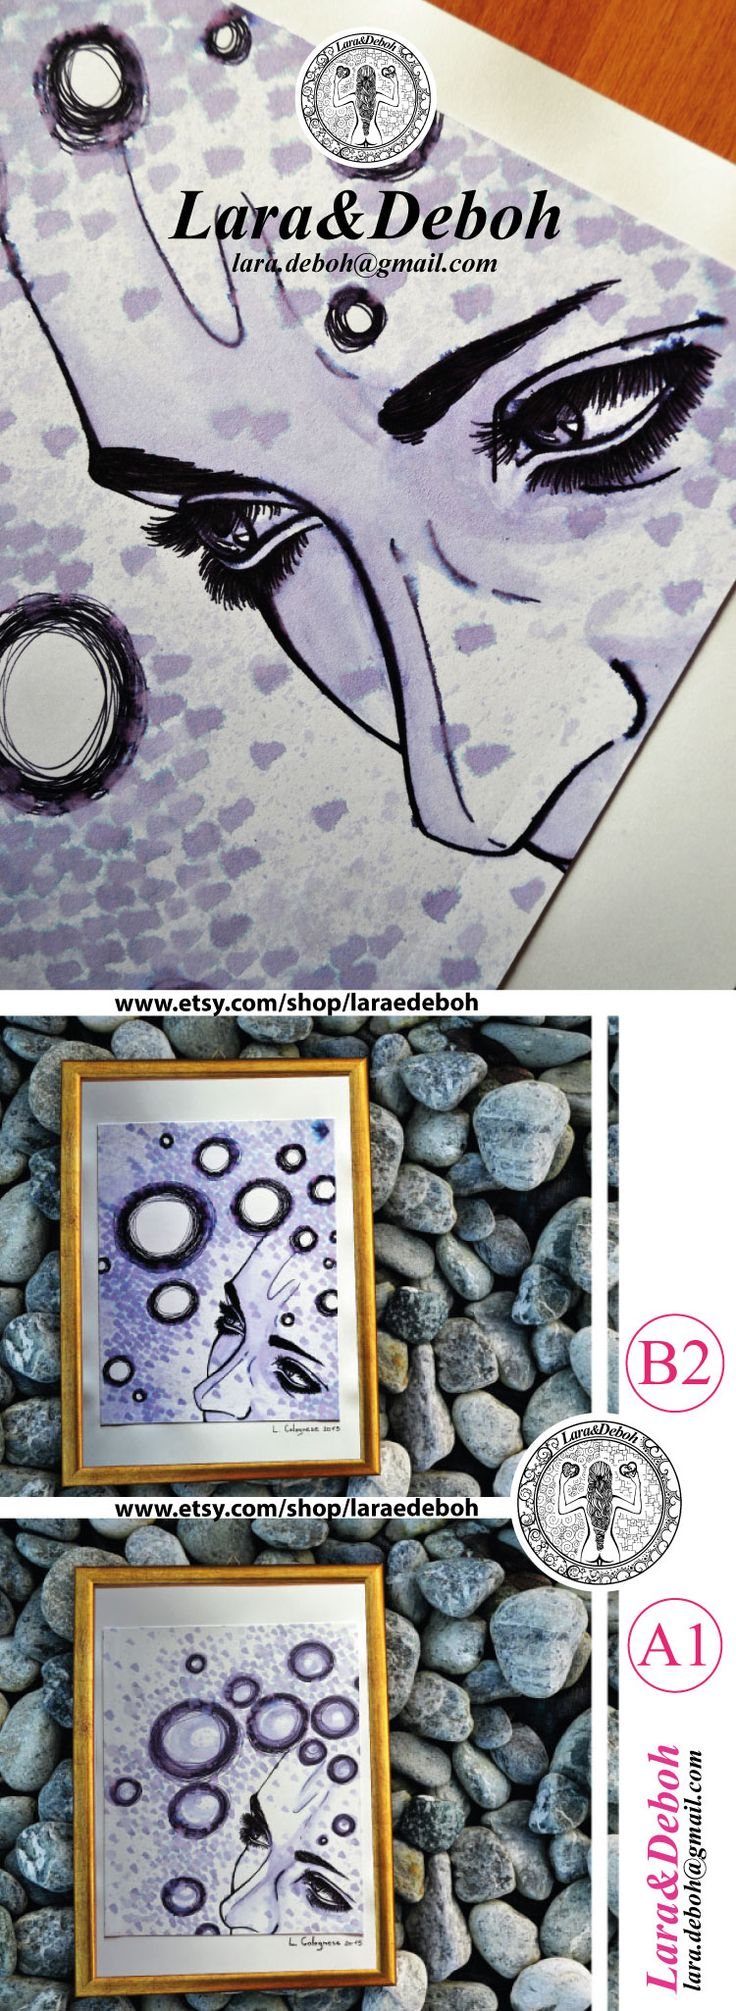 """Original drawing from the Limited Edition collection """"Lara&Deboh"""".   Author: Lara Colognese  https://www.etsy.com/shop/laraedeboh"""